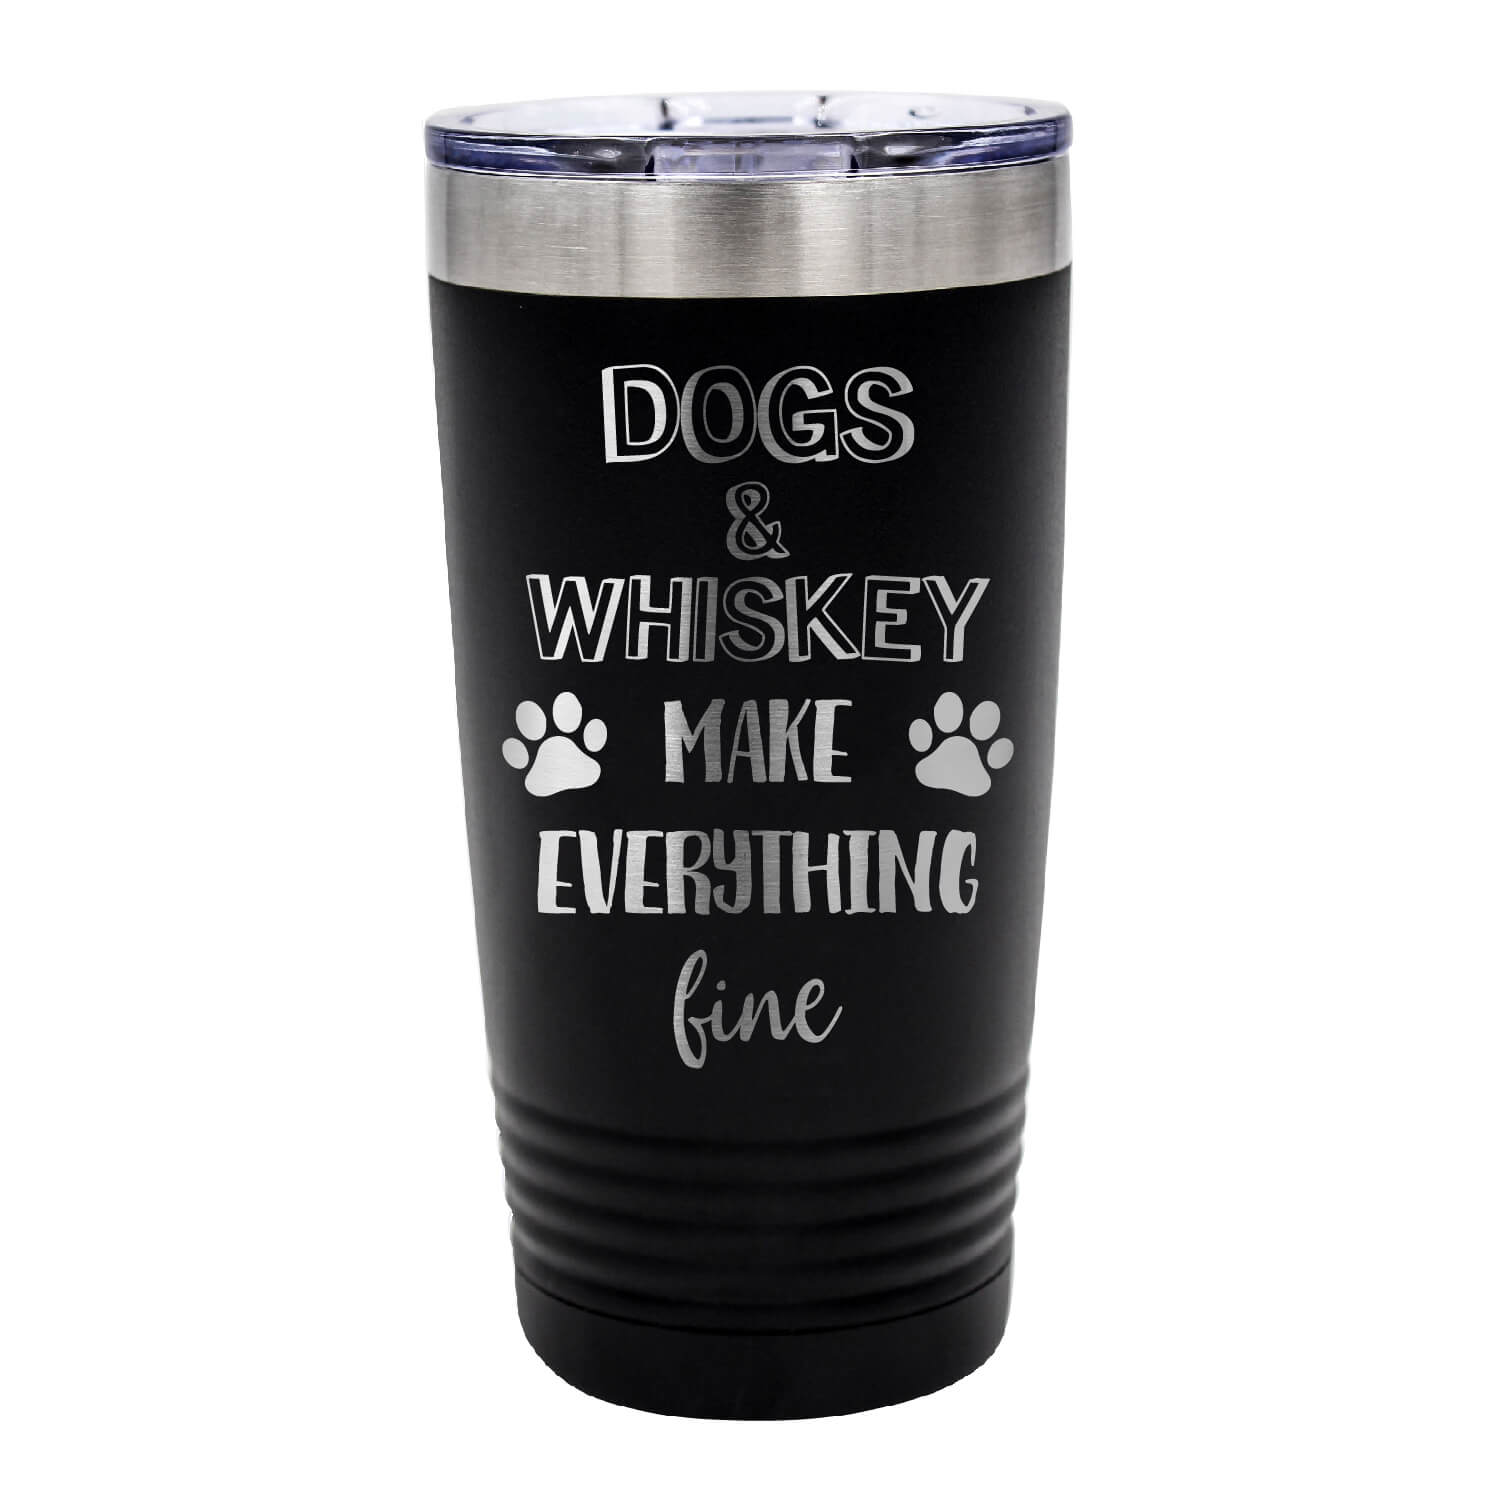 Dogs and Whiskey Make Everything Fine Tumbler